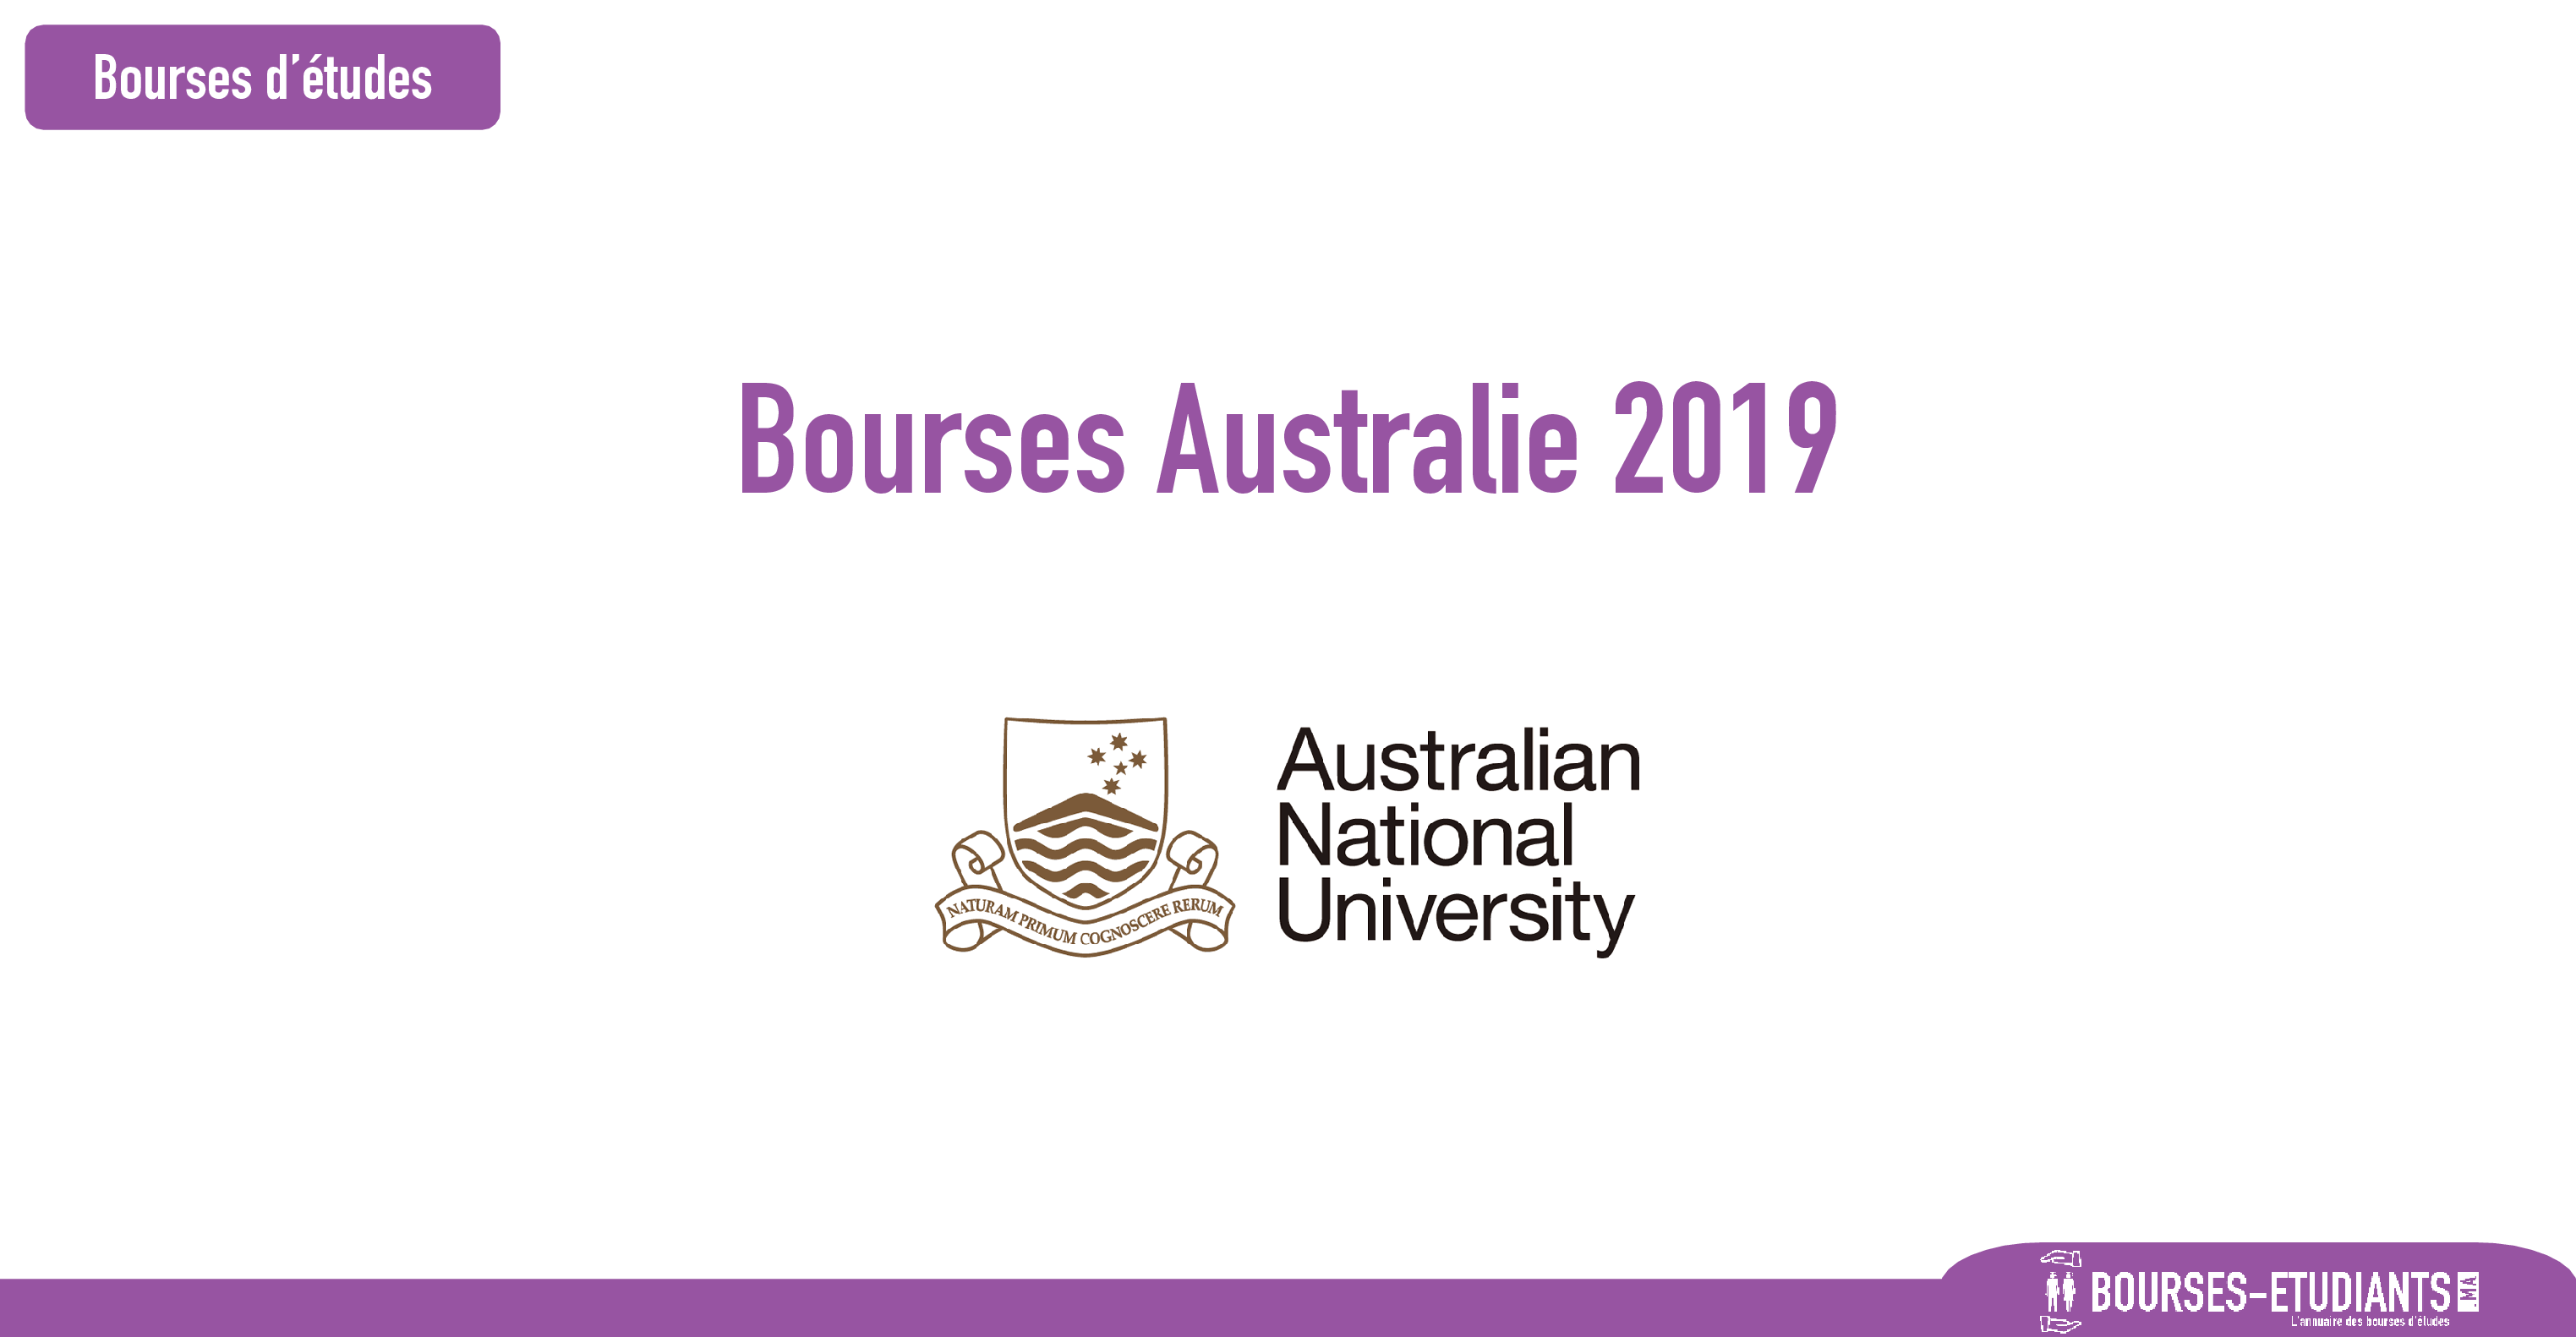 bourse Australian National University